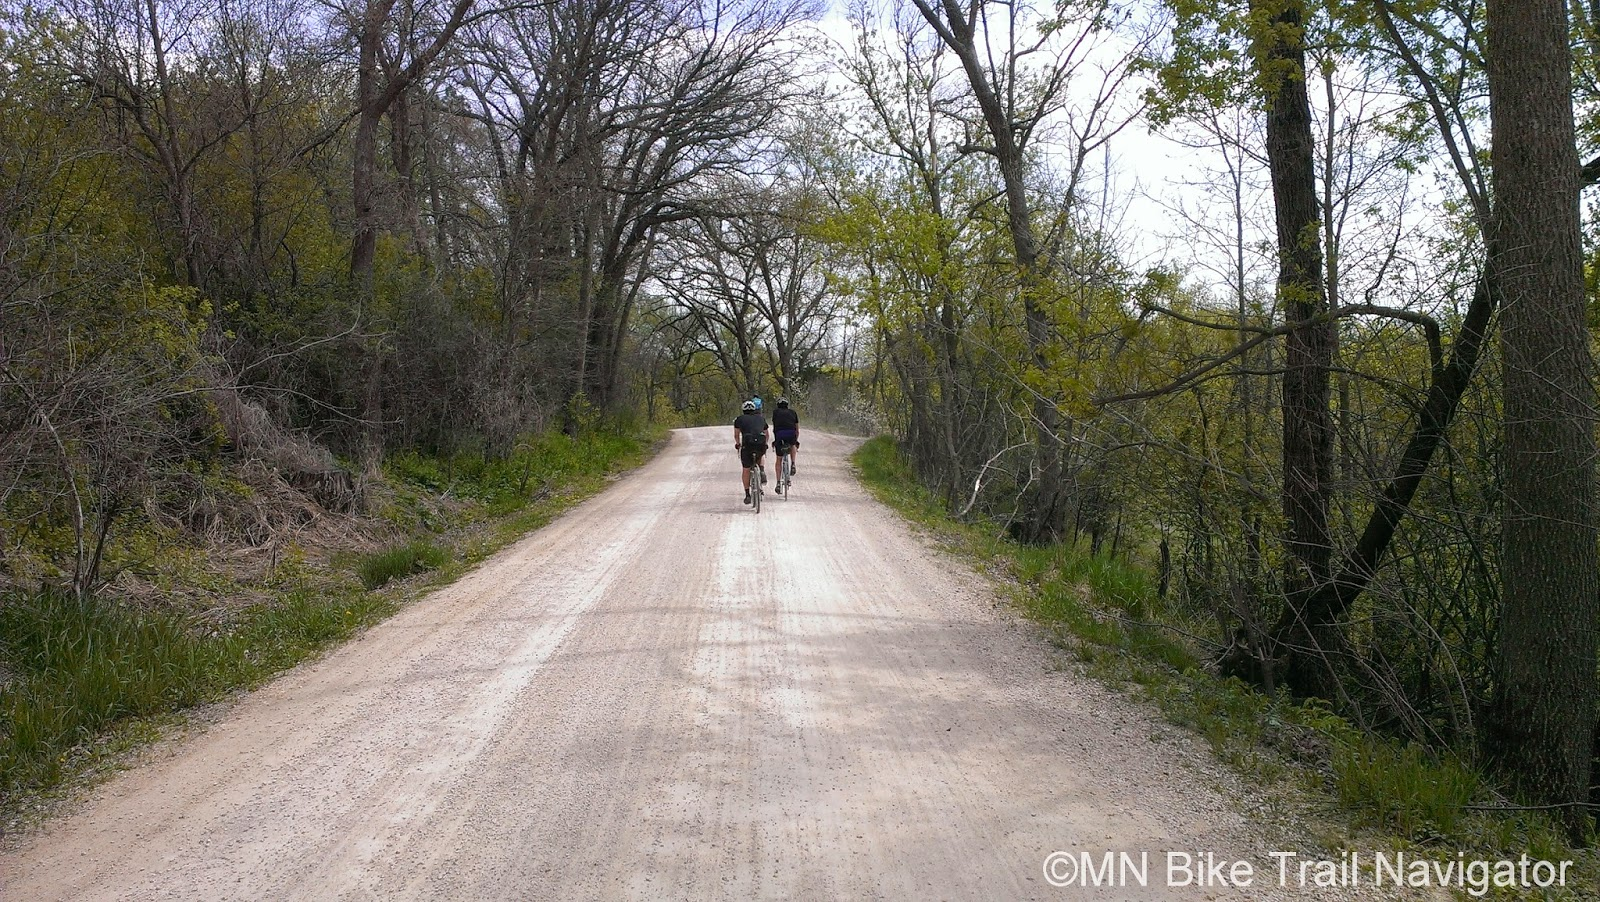 MN Bike Trail Navigator: Resources to Get You Riding Gravel